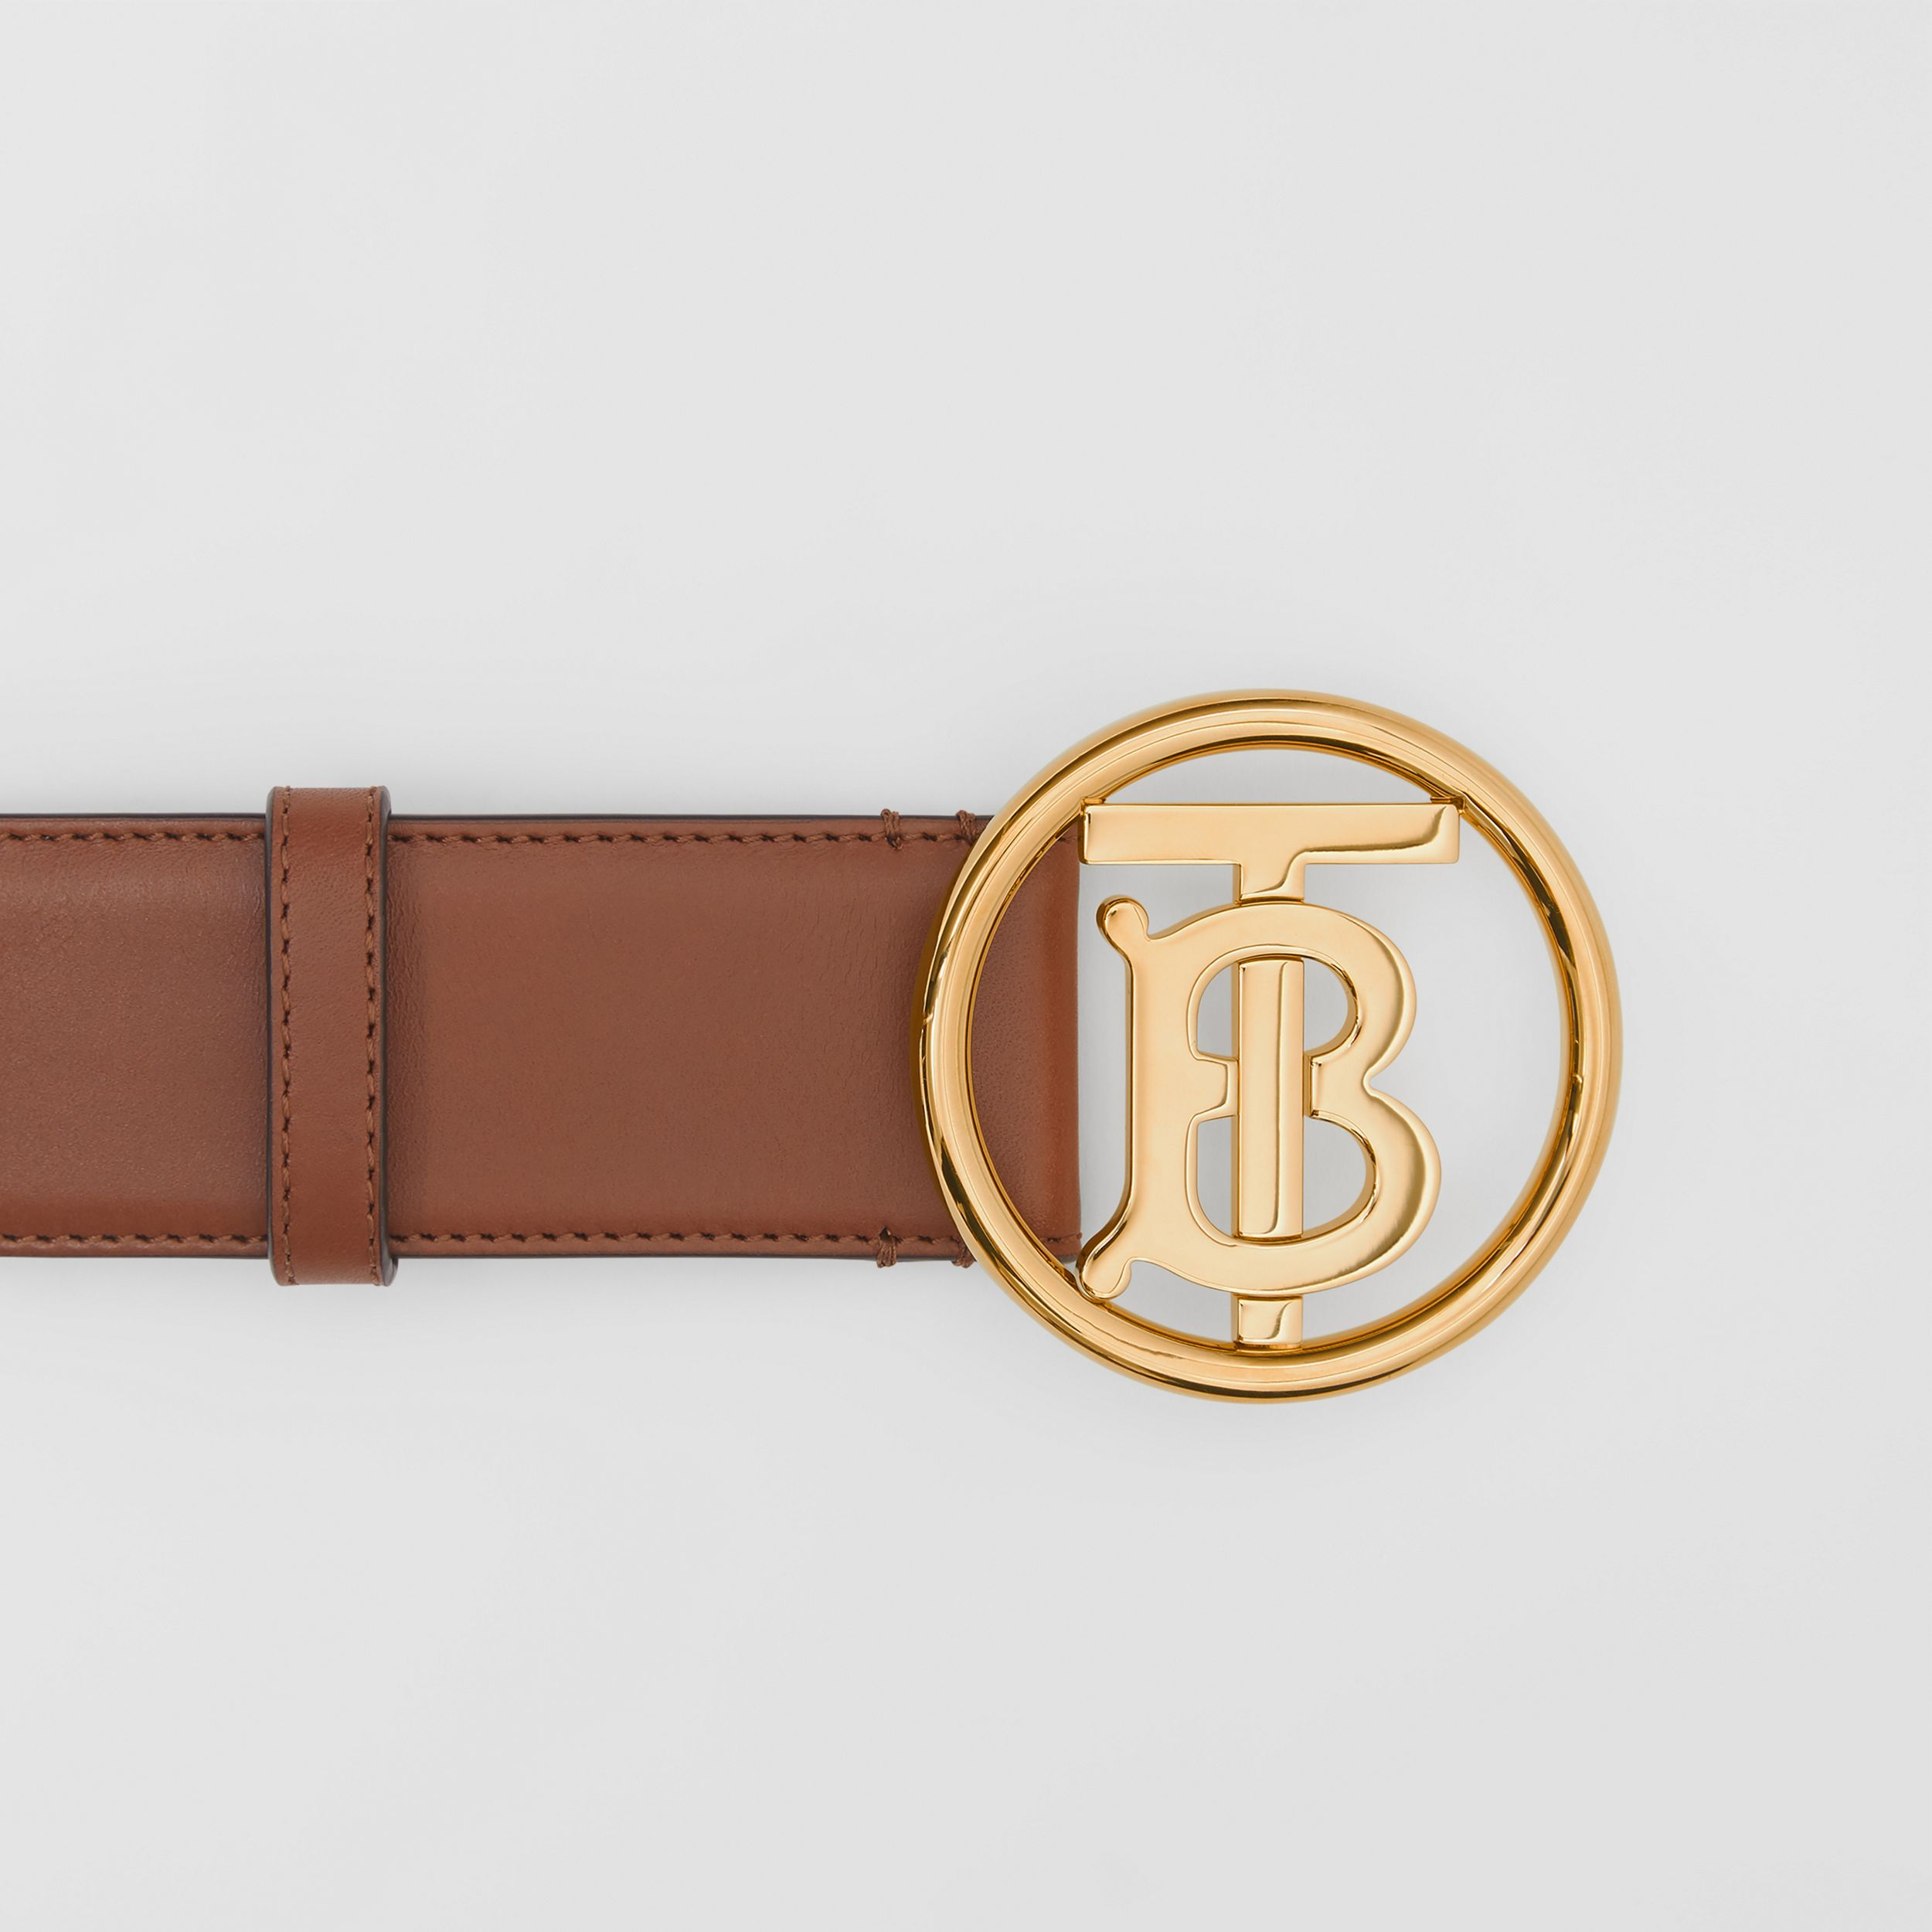 Monogram Motif Leather Belt in Tan/antique Dark Brass | Burberry - 2